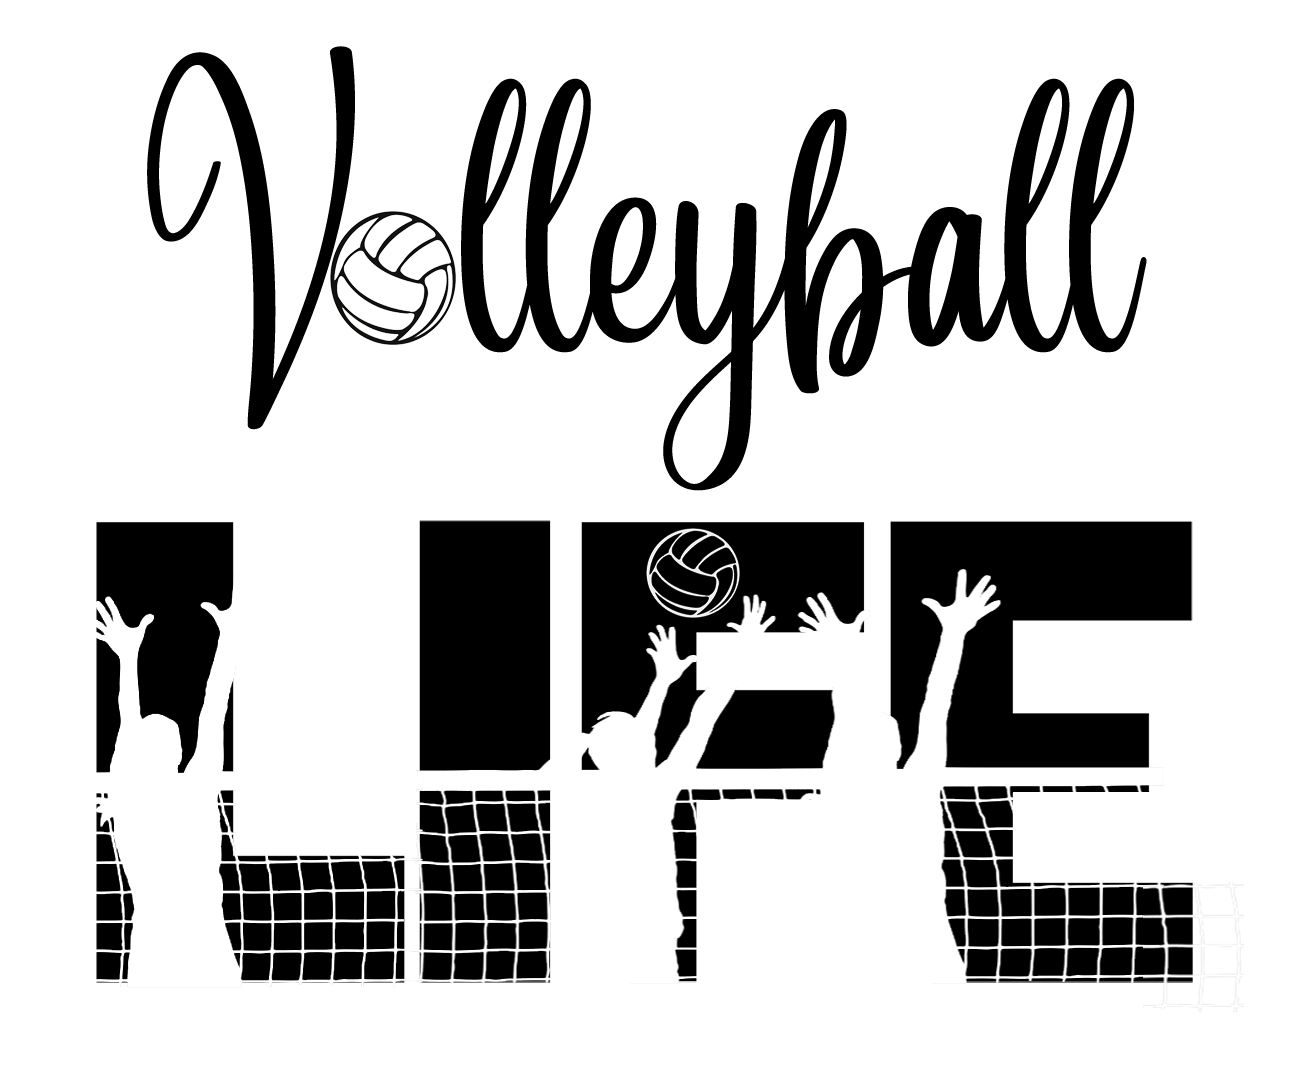 Free Volleyball Life Svg File In 2020 Cricut Volleyball Cricut Svg Files Free